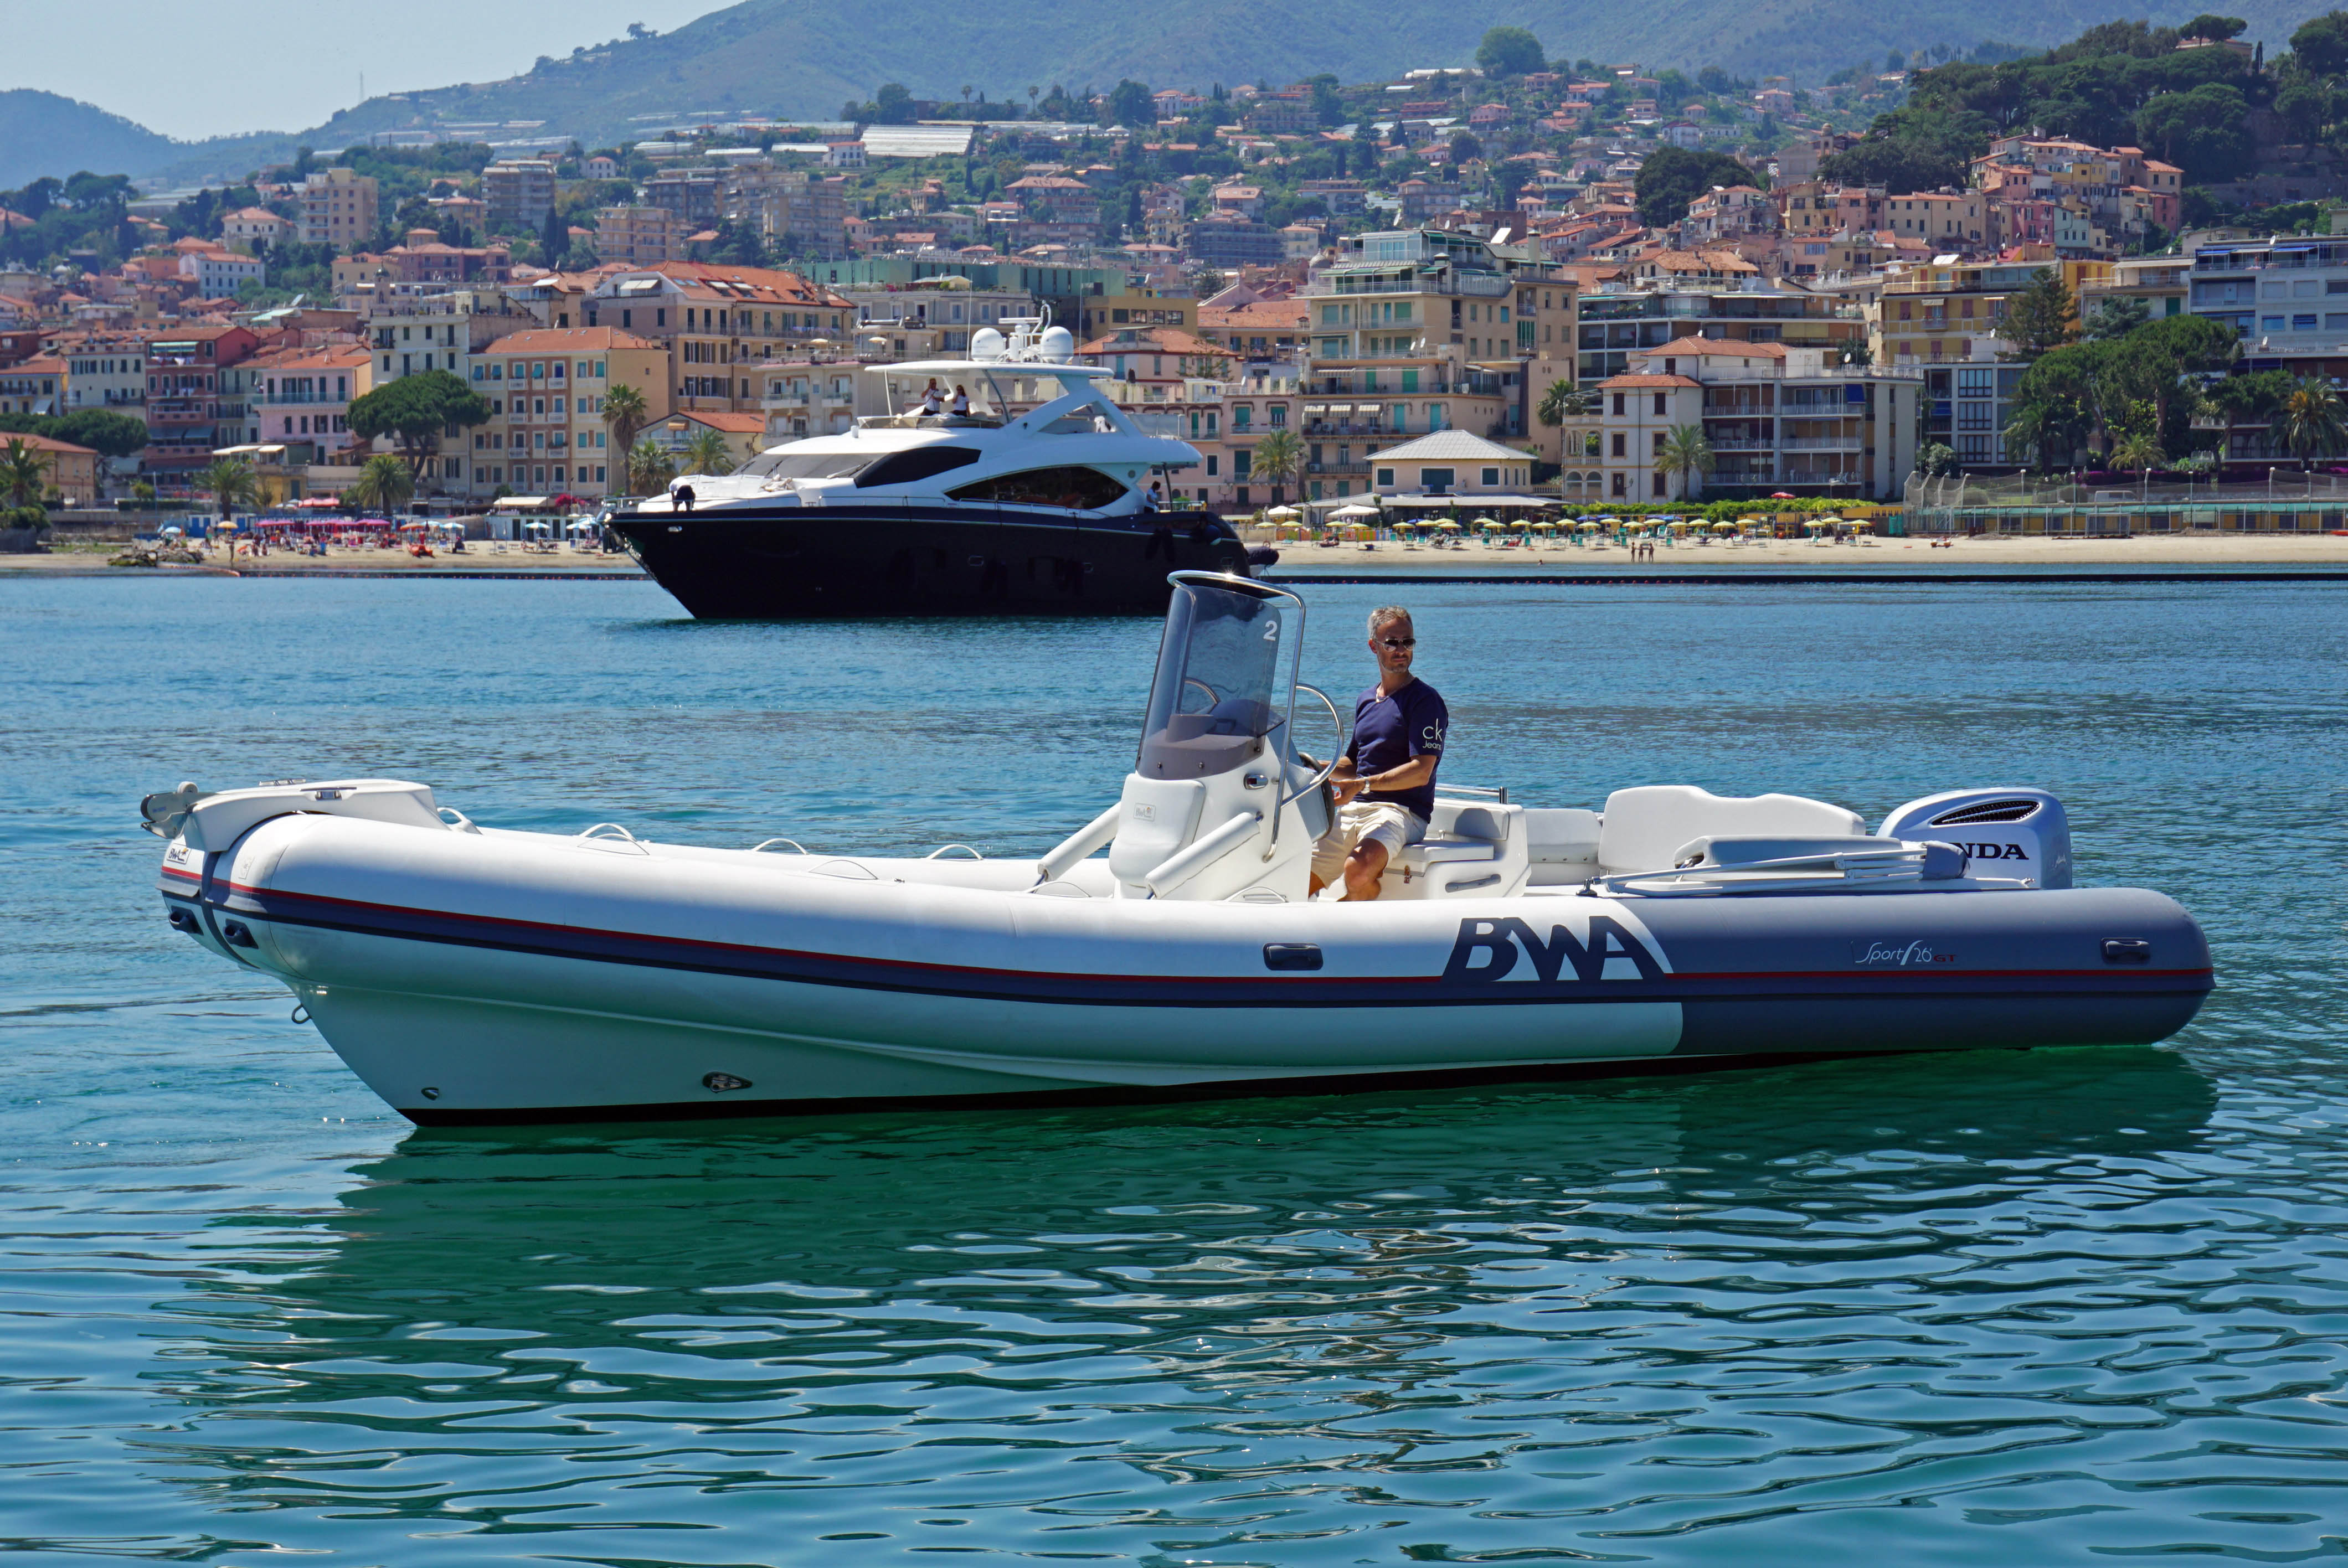 Riviera_Yacht_Charter_Sanremo_Bwa26Gt_2